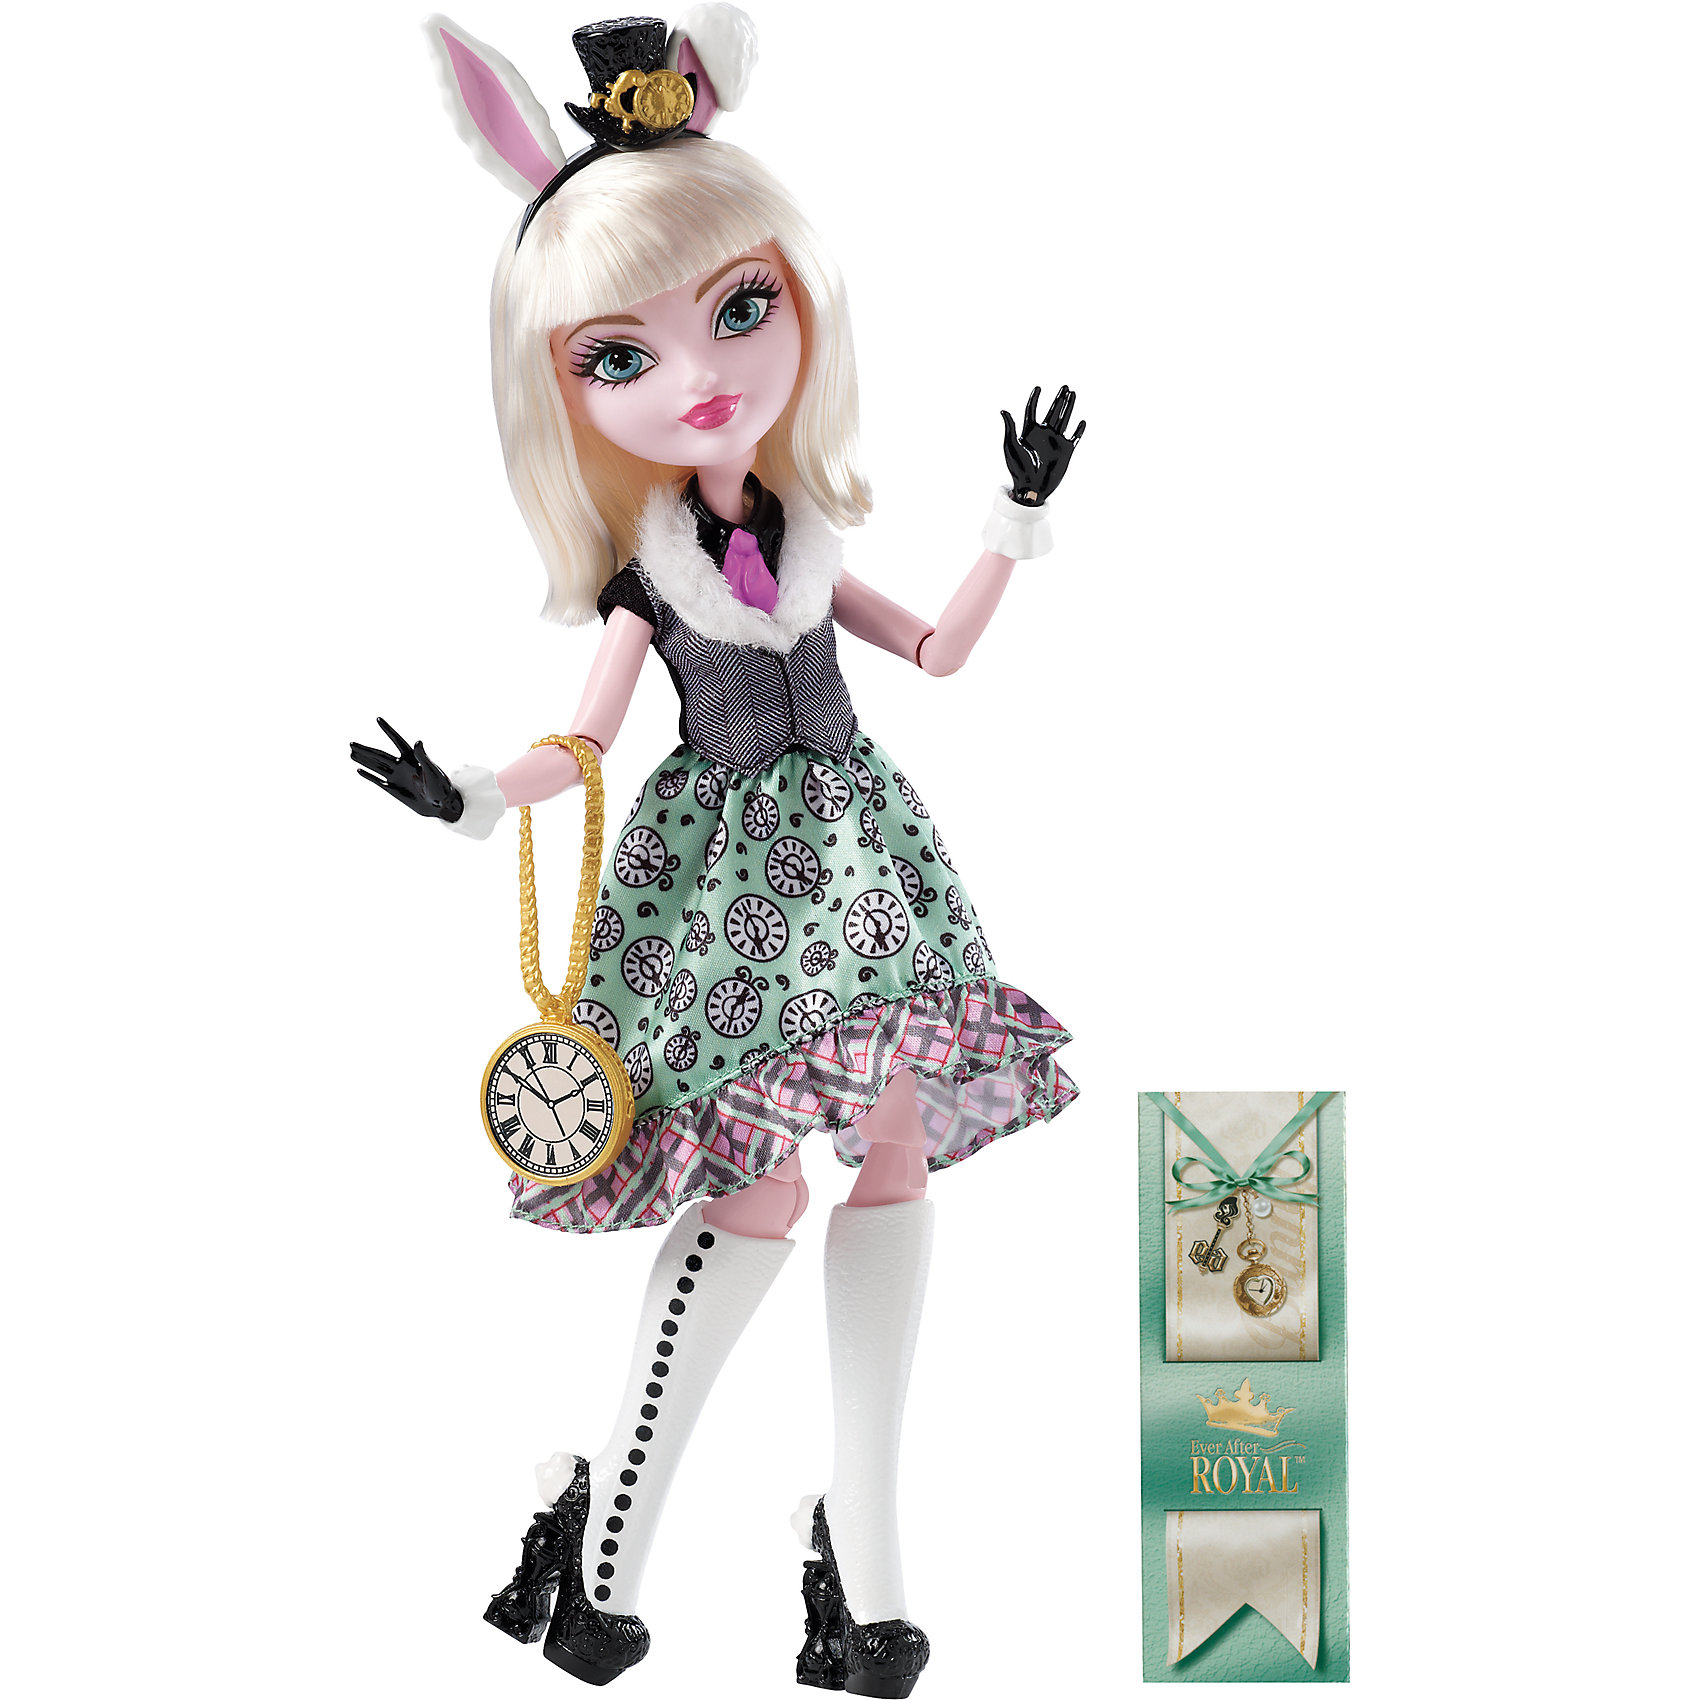 Mattel Кукла Банни Бланк, Ever After High ever after high кукла лучница банни бланк ever after high